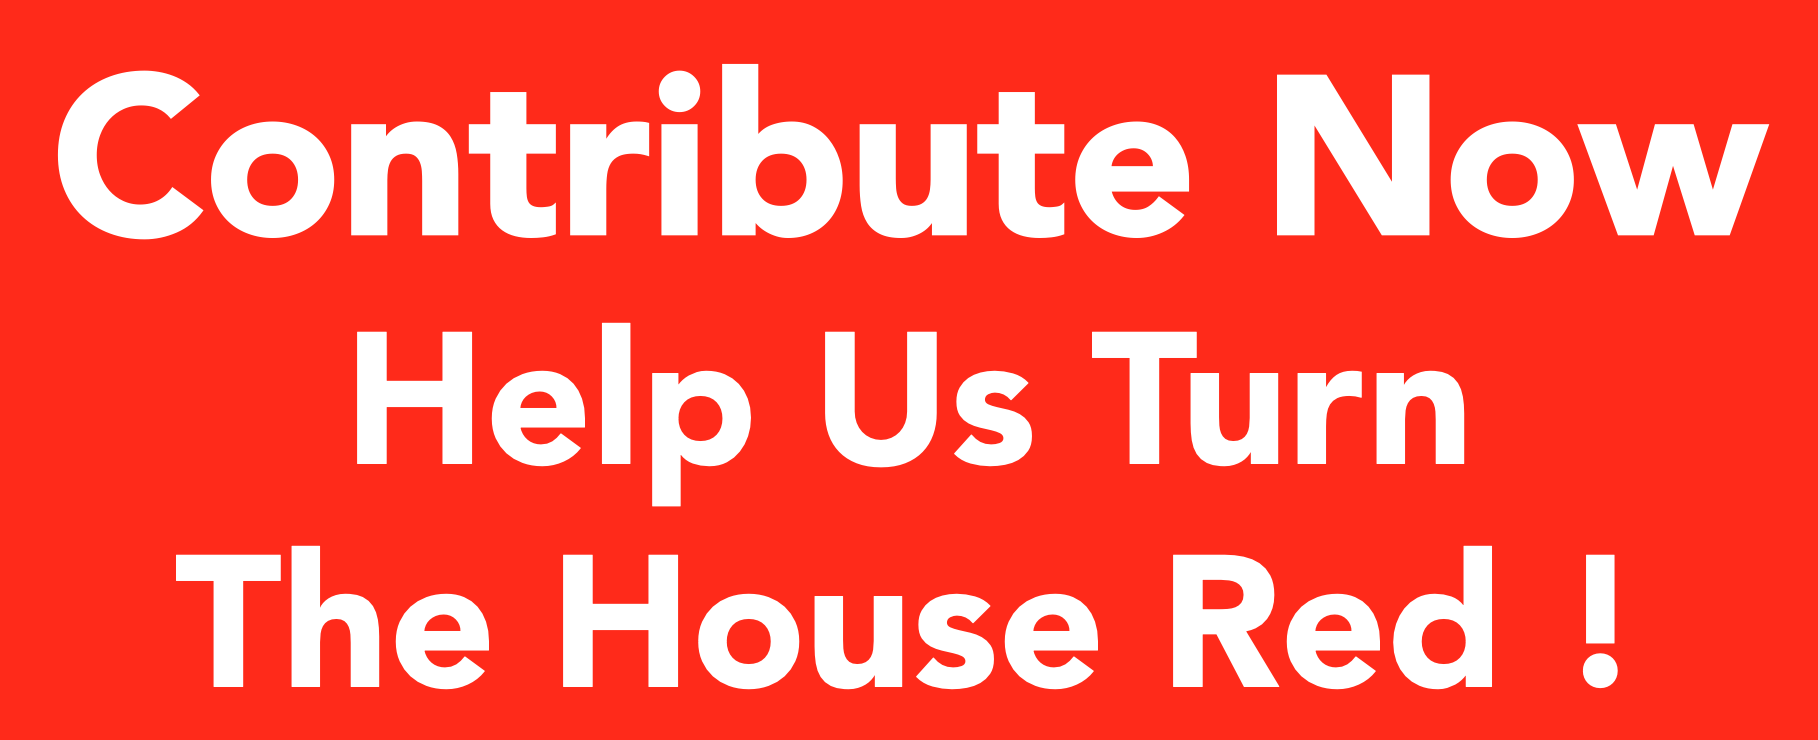 Red_White_Donate_Button.png